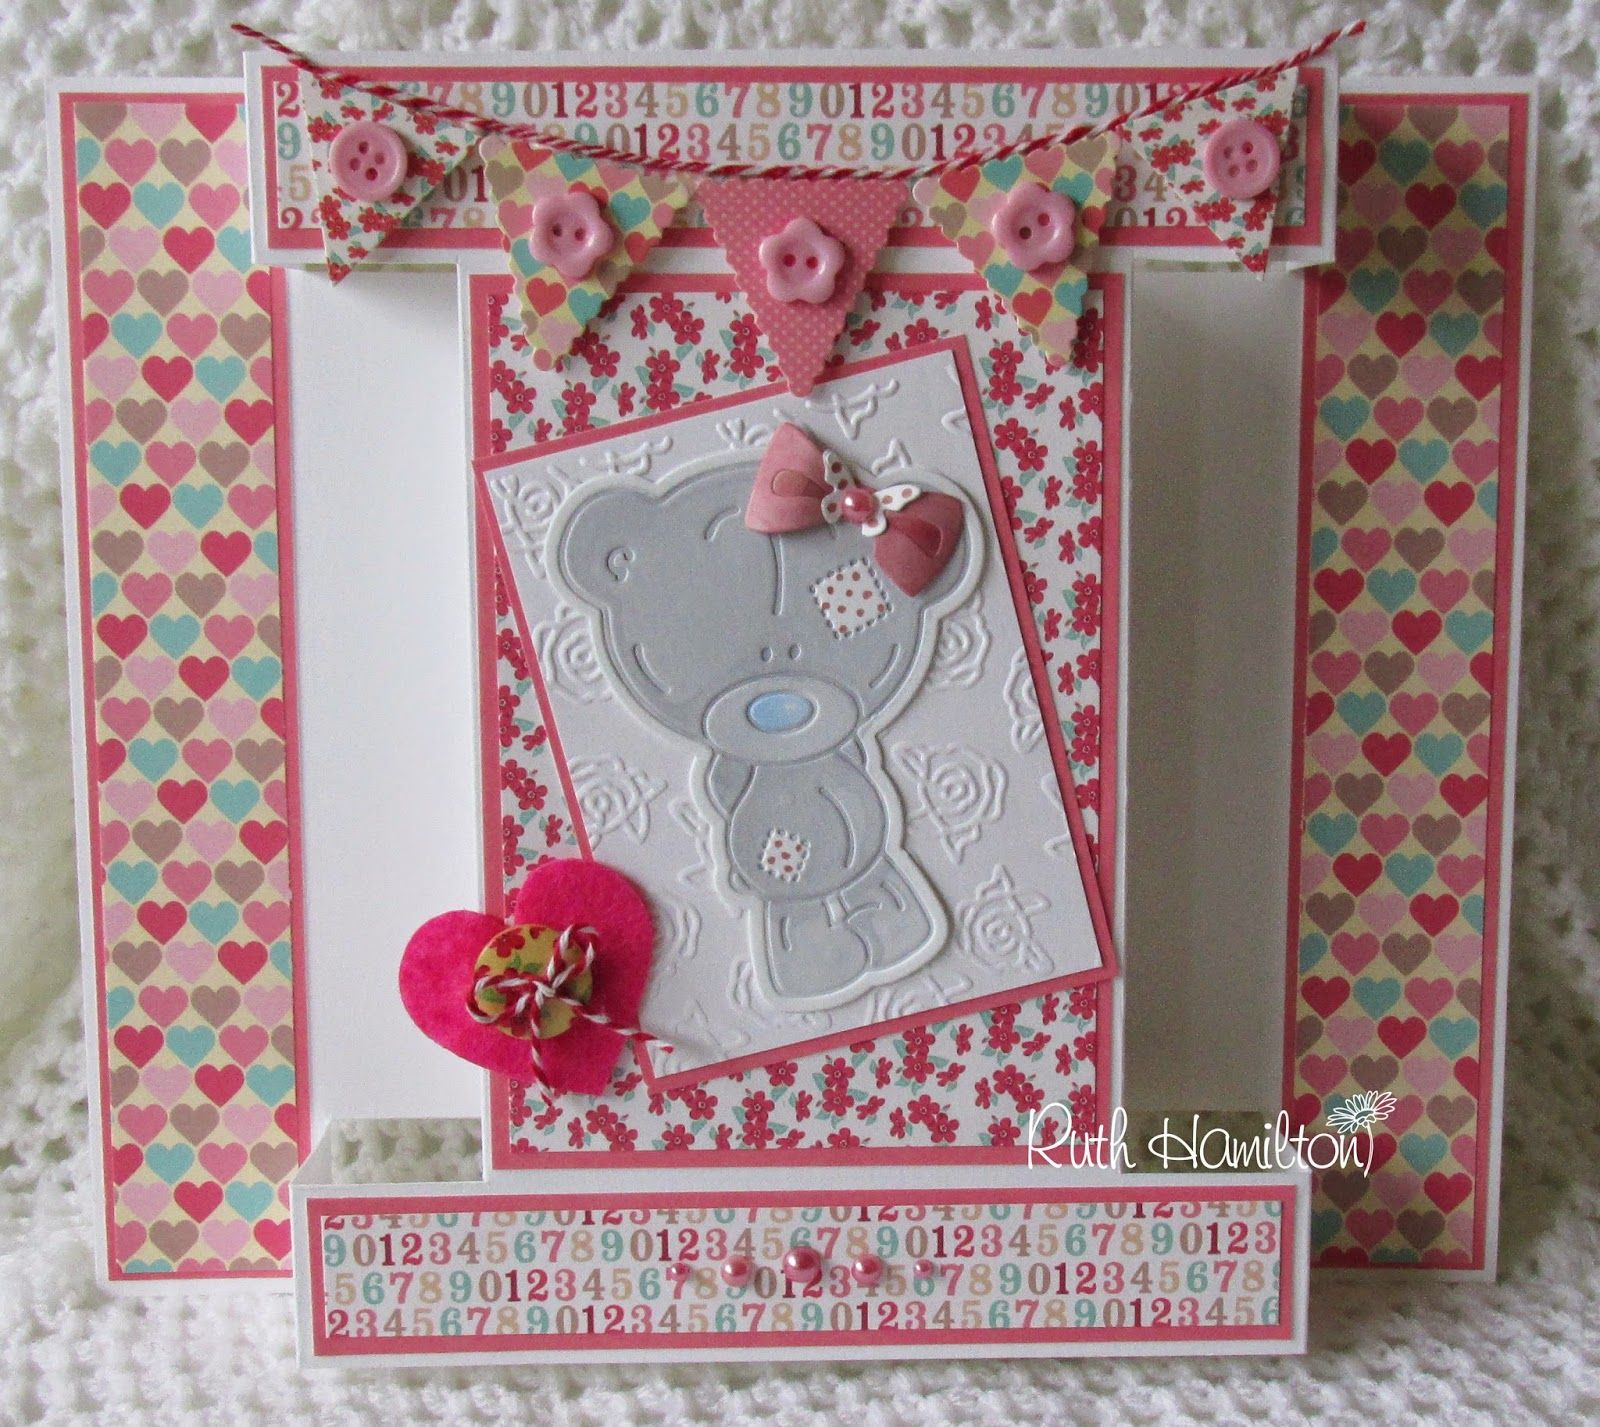 A Passion For Cards: Tiny Tatty Teddy Girl card template and instructions